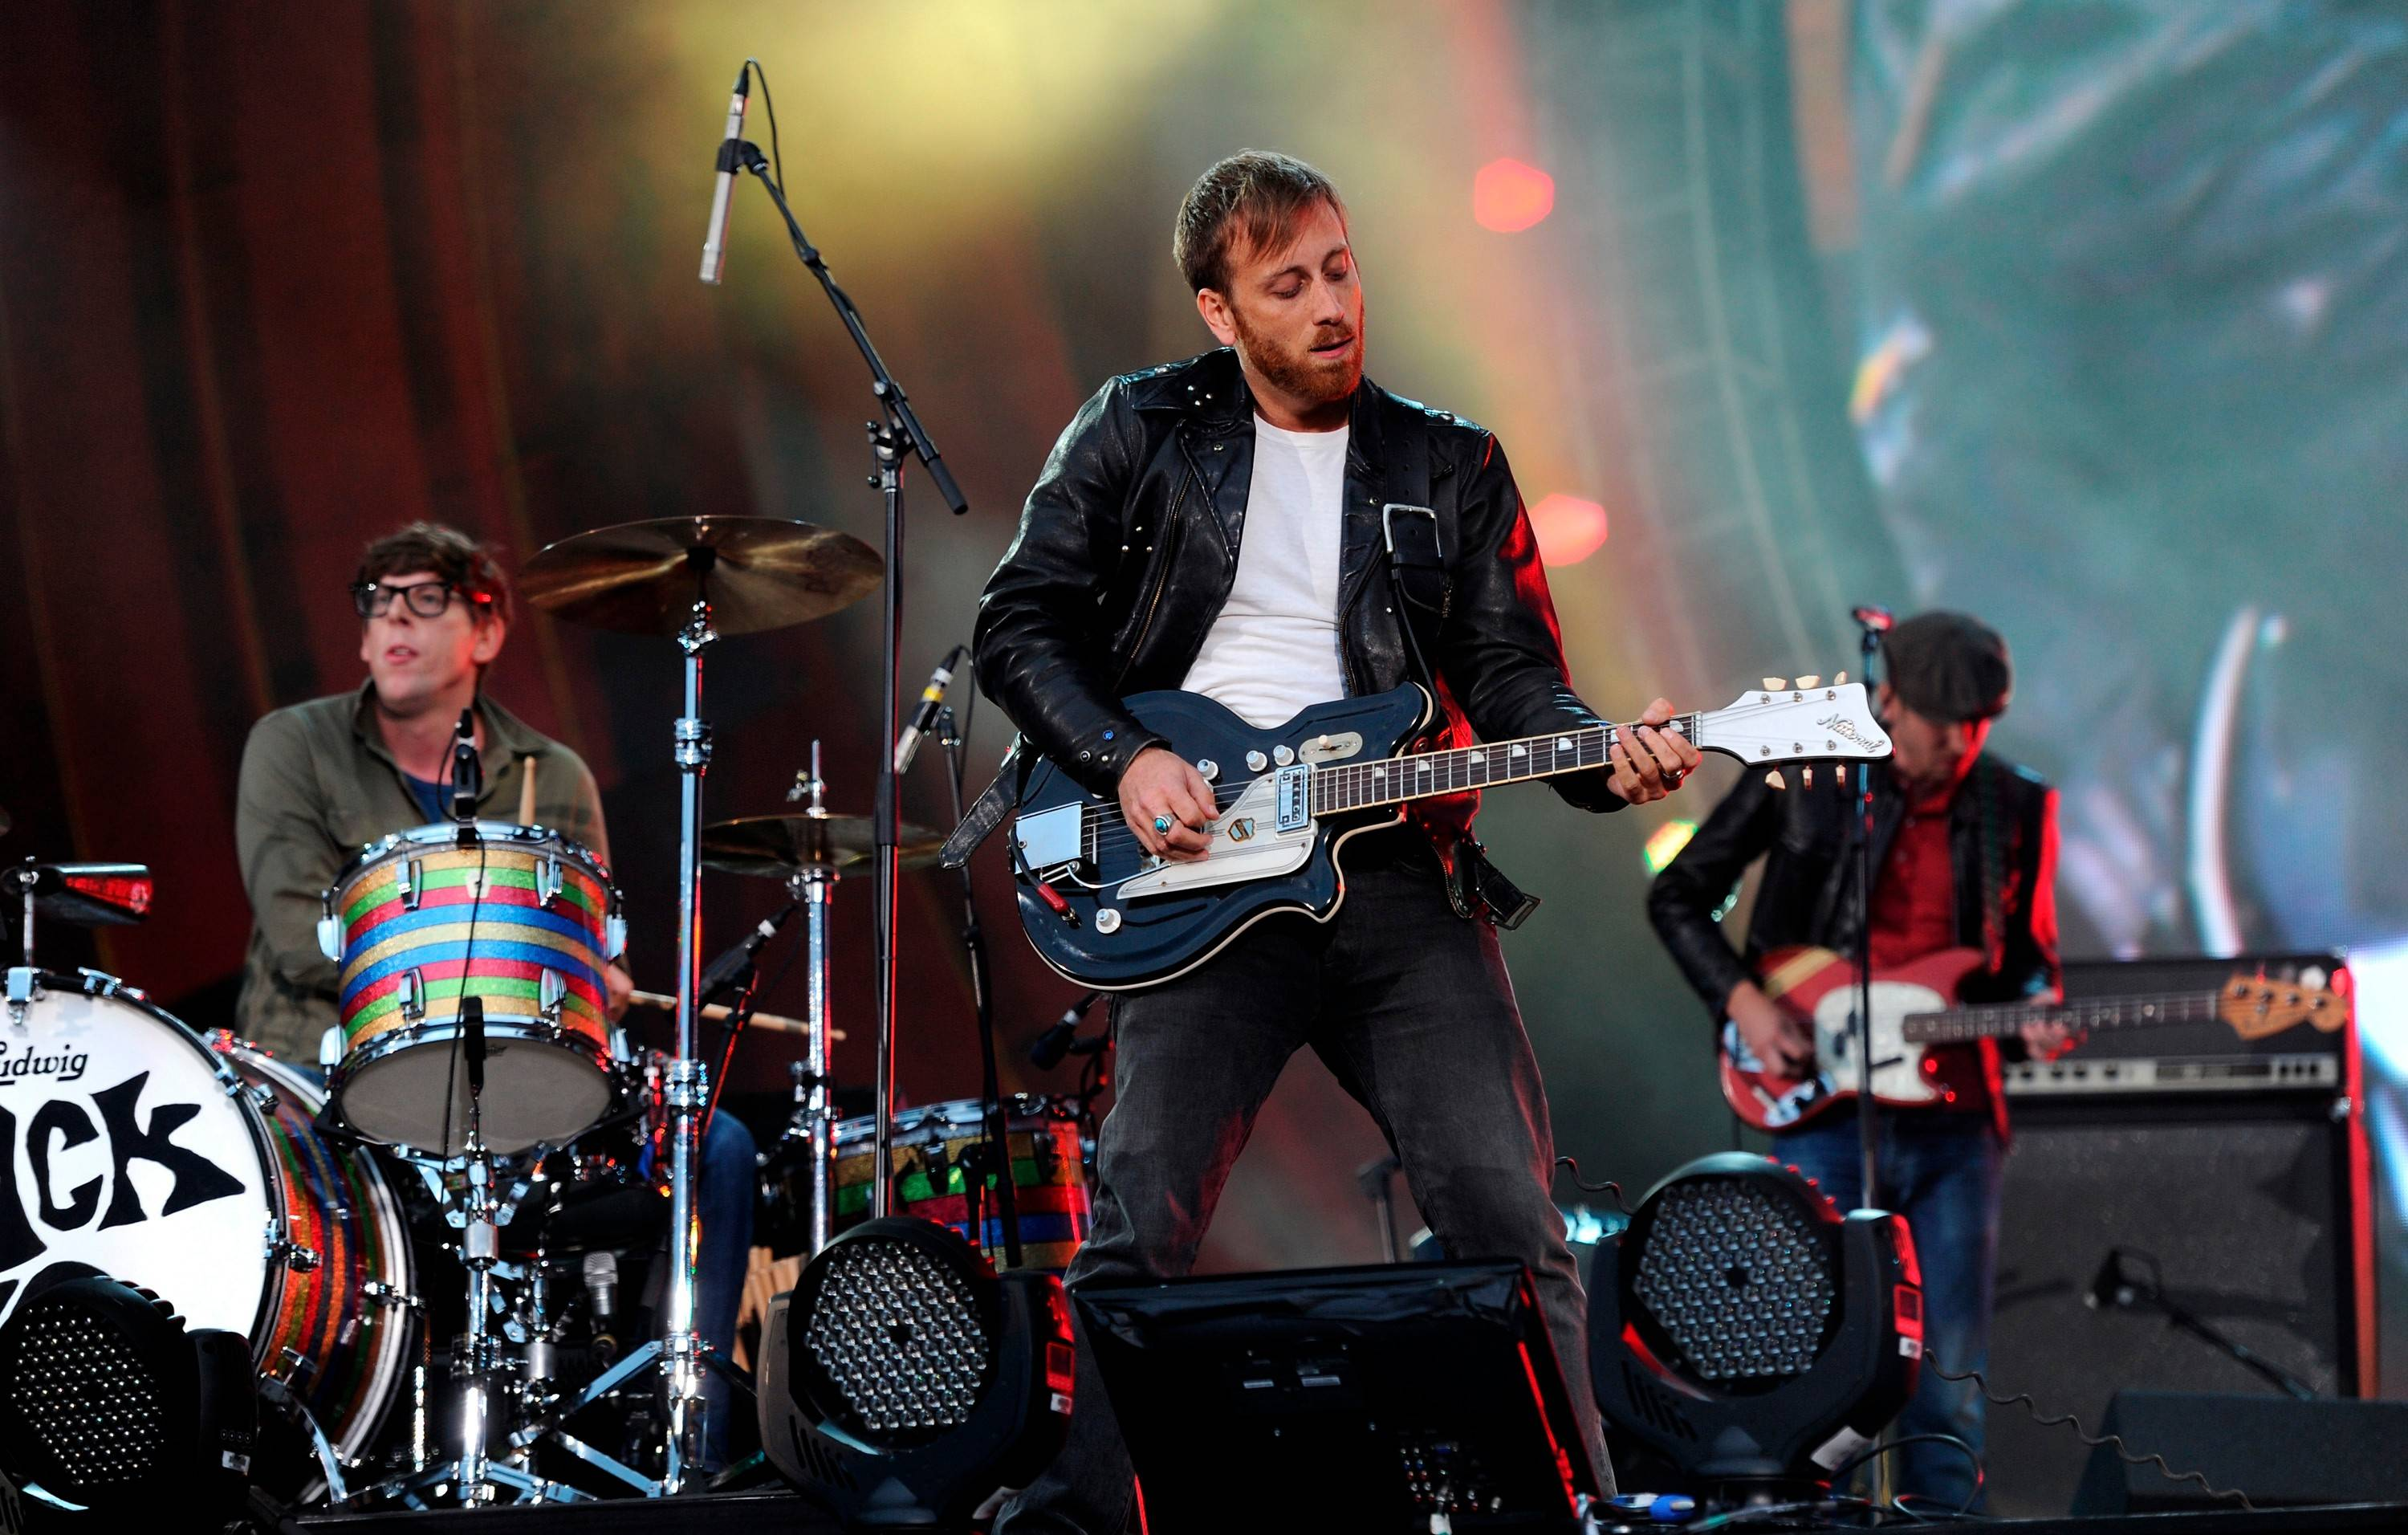 The Black Keys play the United Center in Chicago on Sunday, Sept. 27.